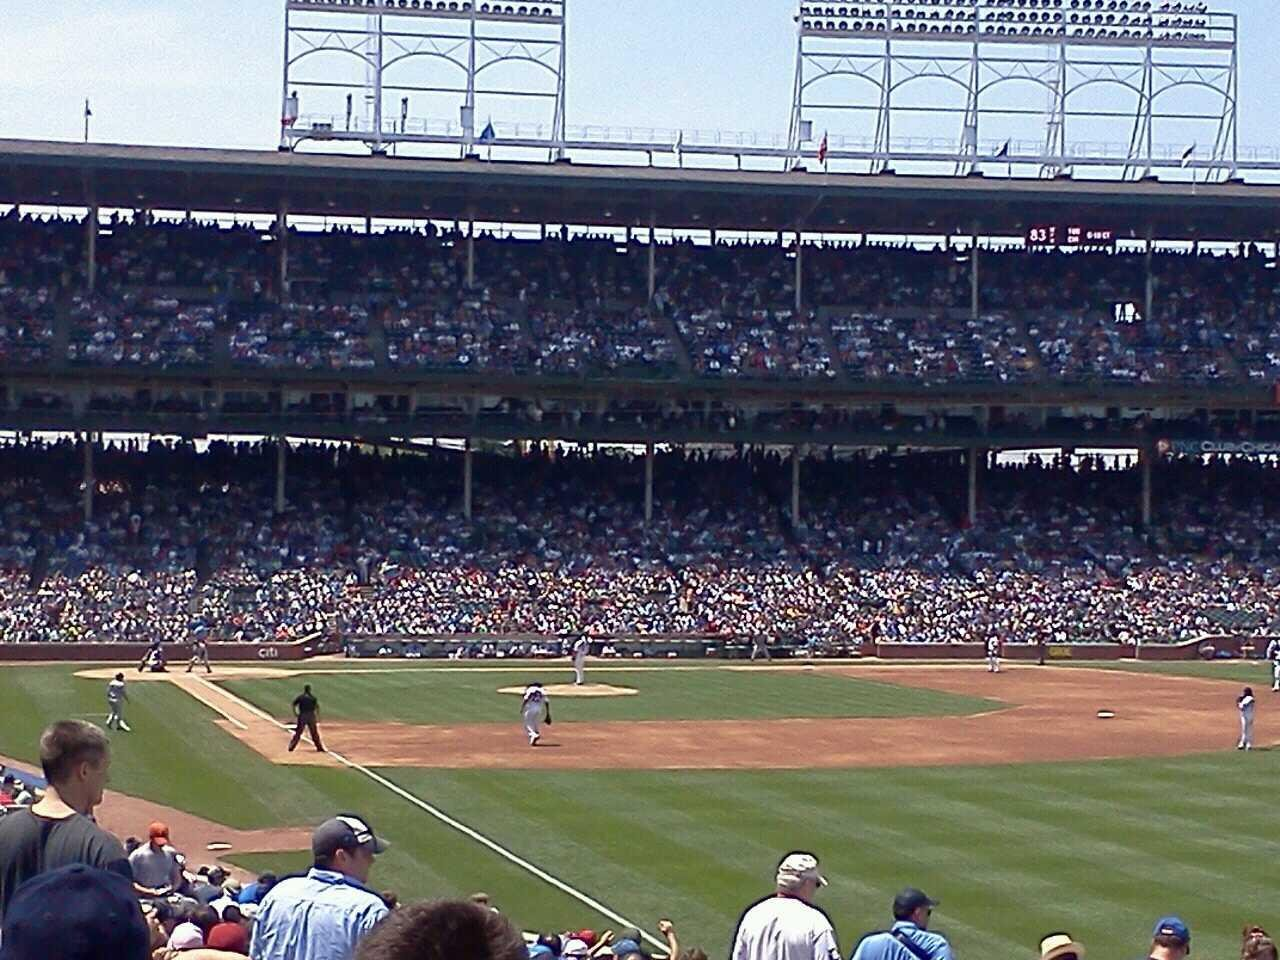 Wrigley Field Section 242 Row 3 Seat 111